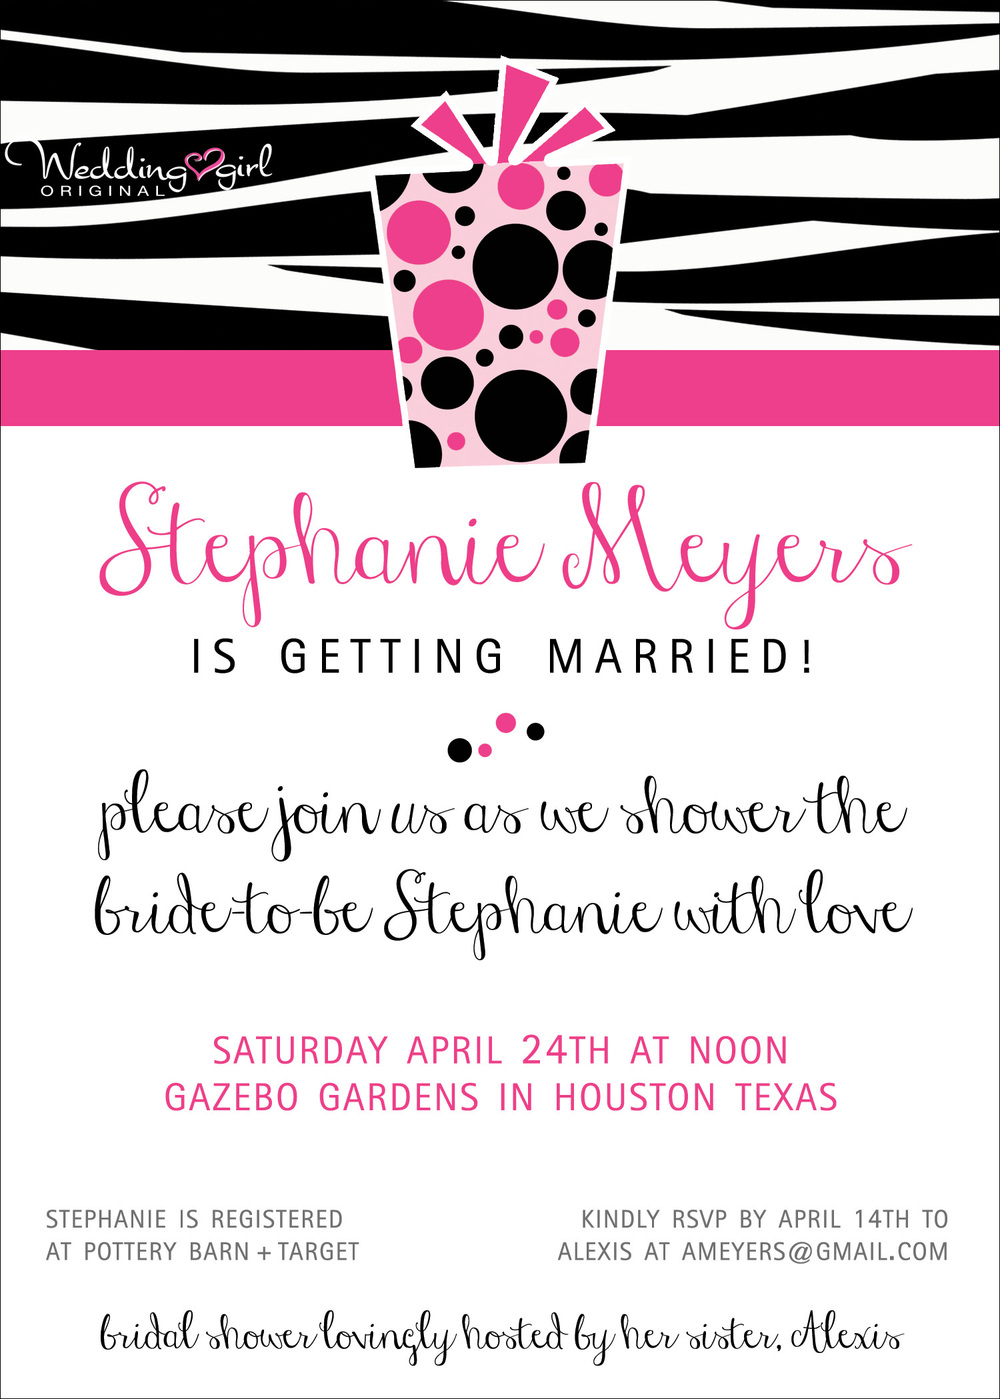 pink zebra bridal shower invitation | from www.etsy.com/shop/WeddingGirl